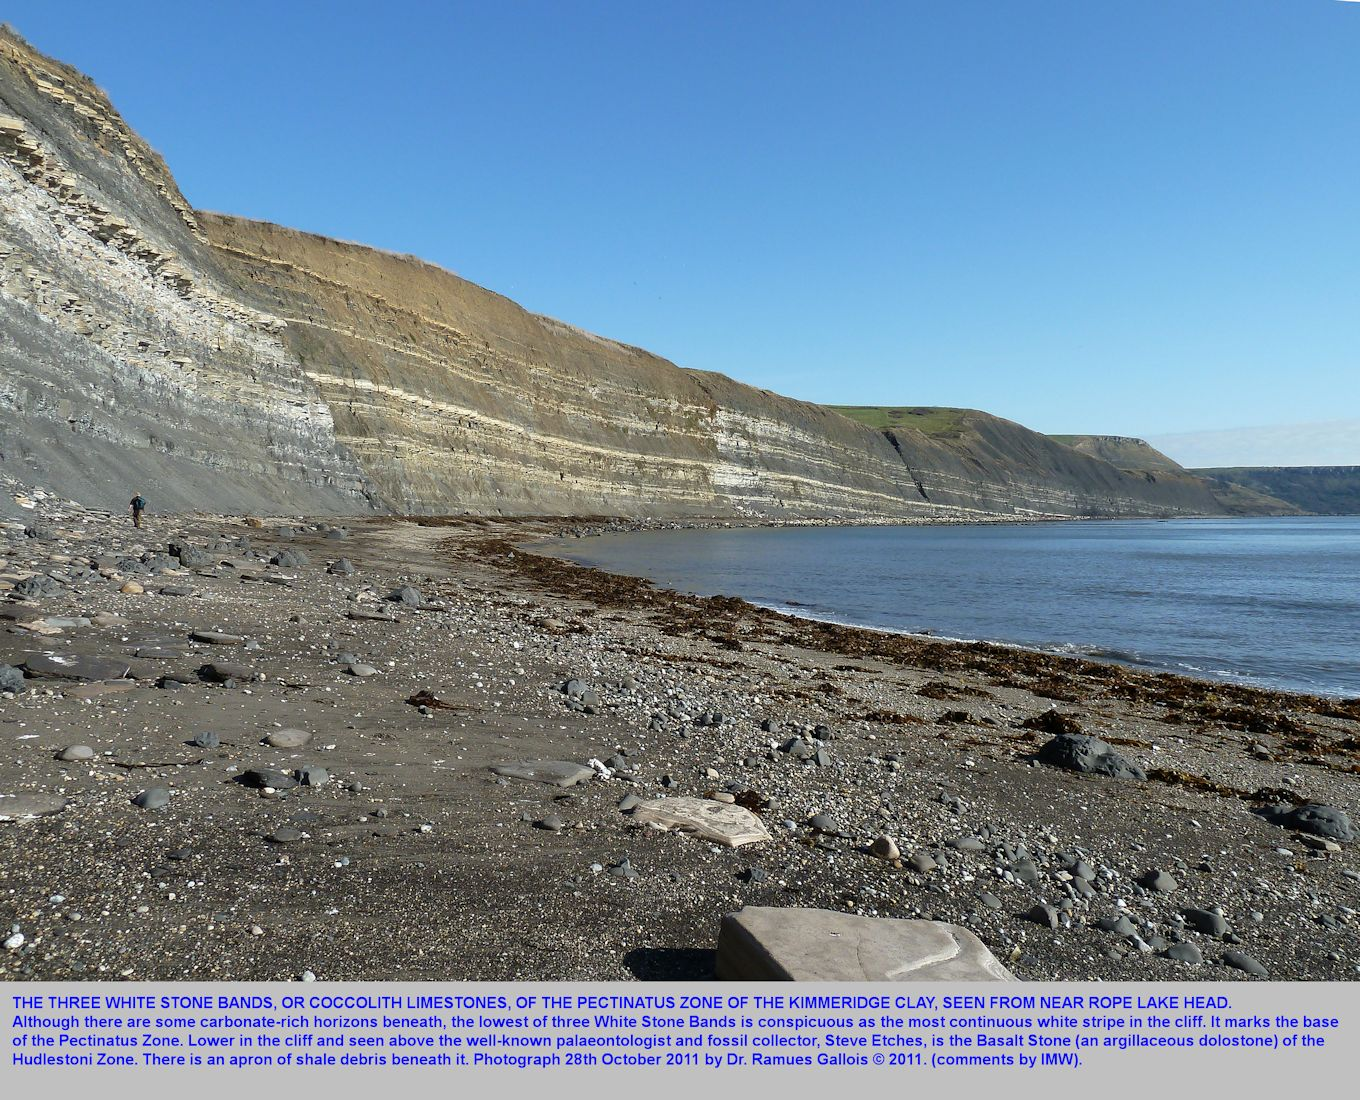 A broad view in good weather of the Three White Stone Bands, Pectinatus Zone, Upper Kimmeridge Clay, Kimmeridge Bay, Dorset, photograph by Ramues Gallois, 28th October 2011